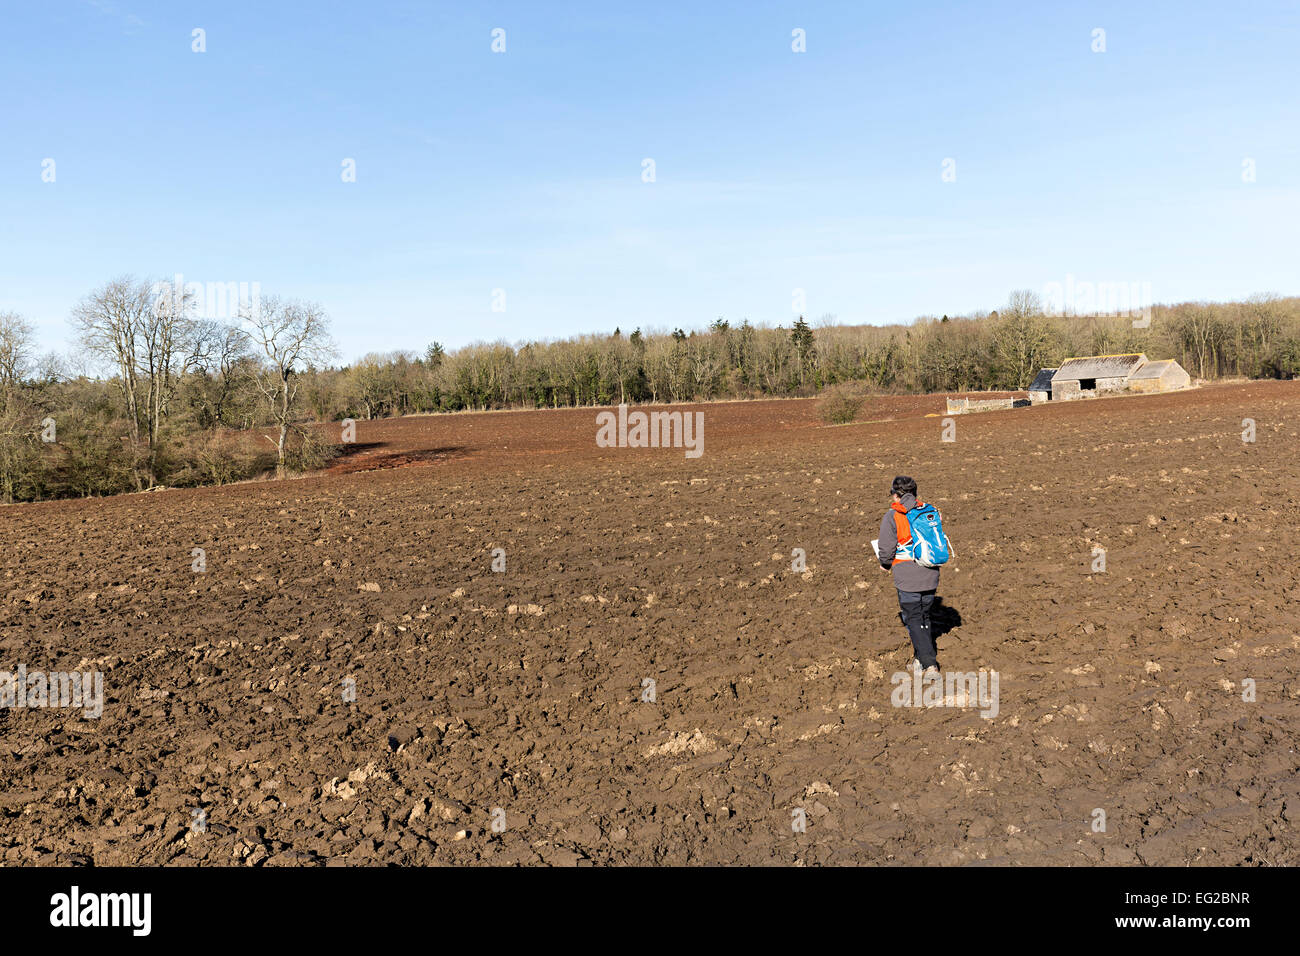 Walker crossing ploughed field using map to follow line of footpath, St Briavels, Gloucestershire, England, UK - Stock Image